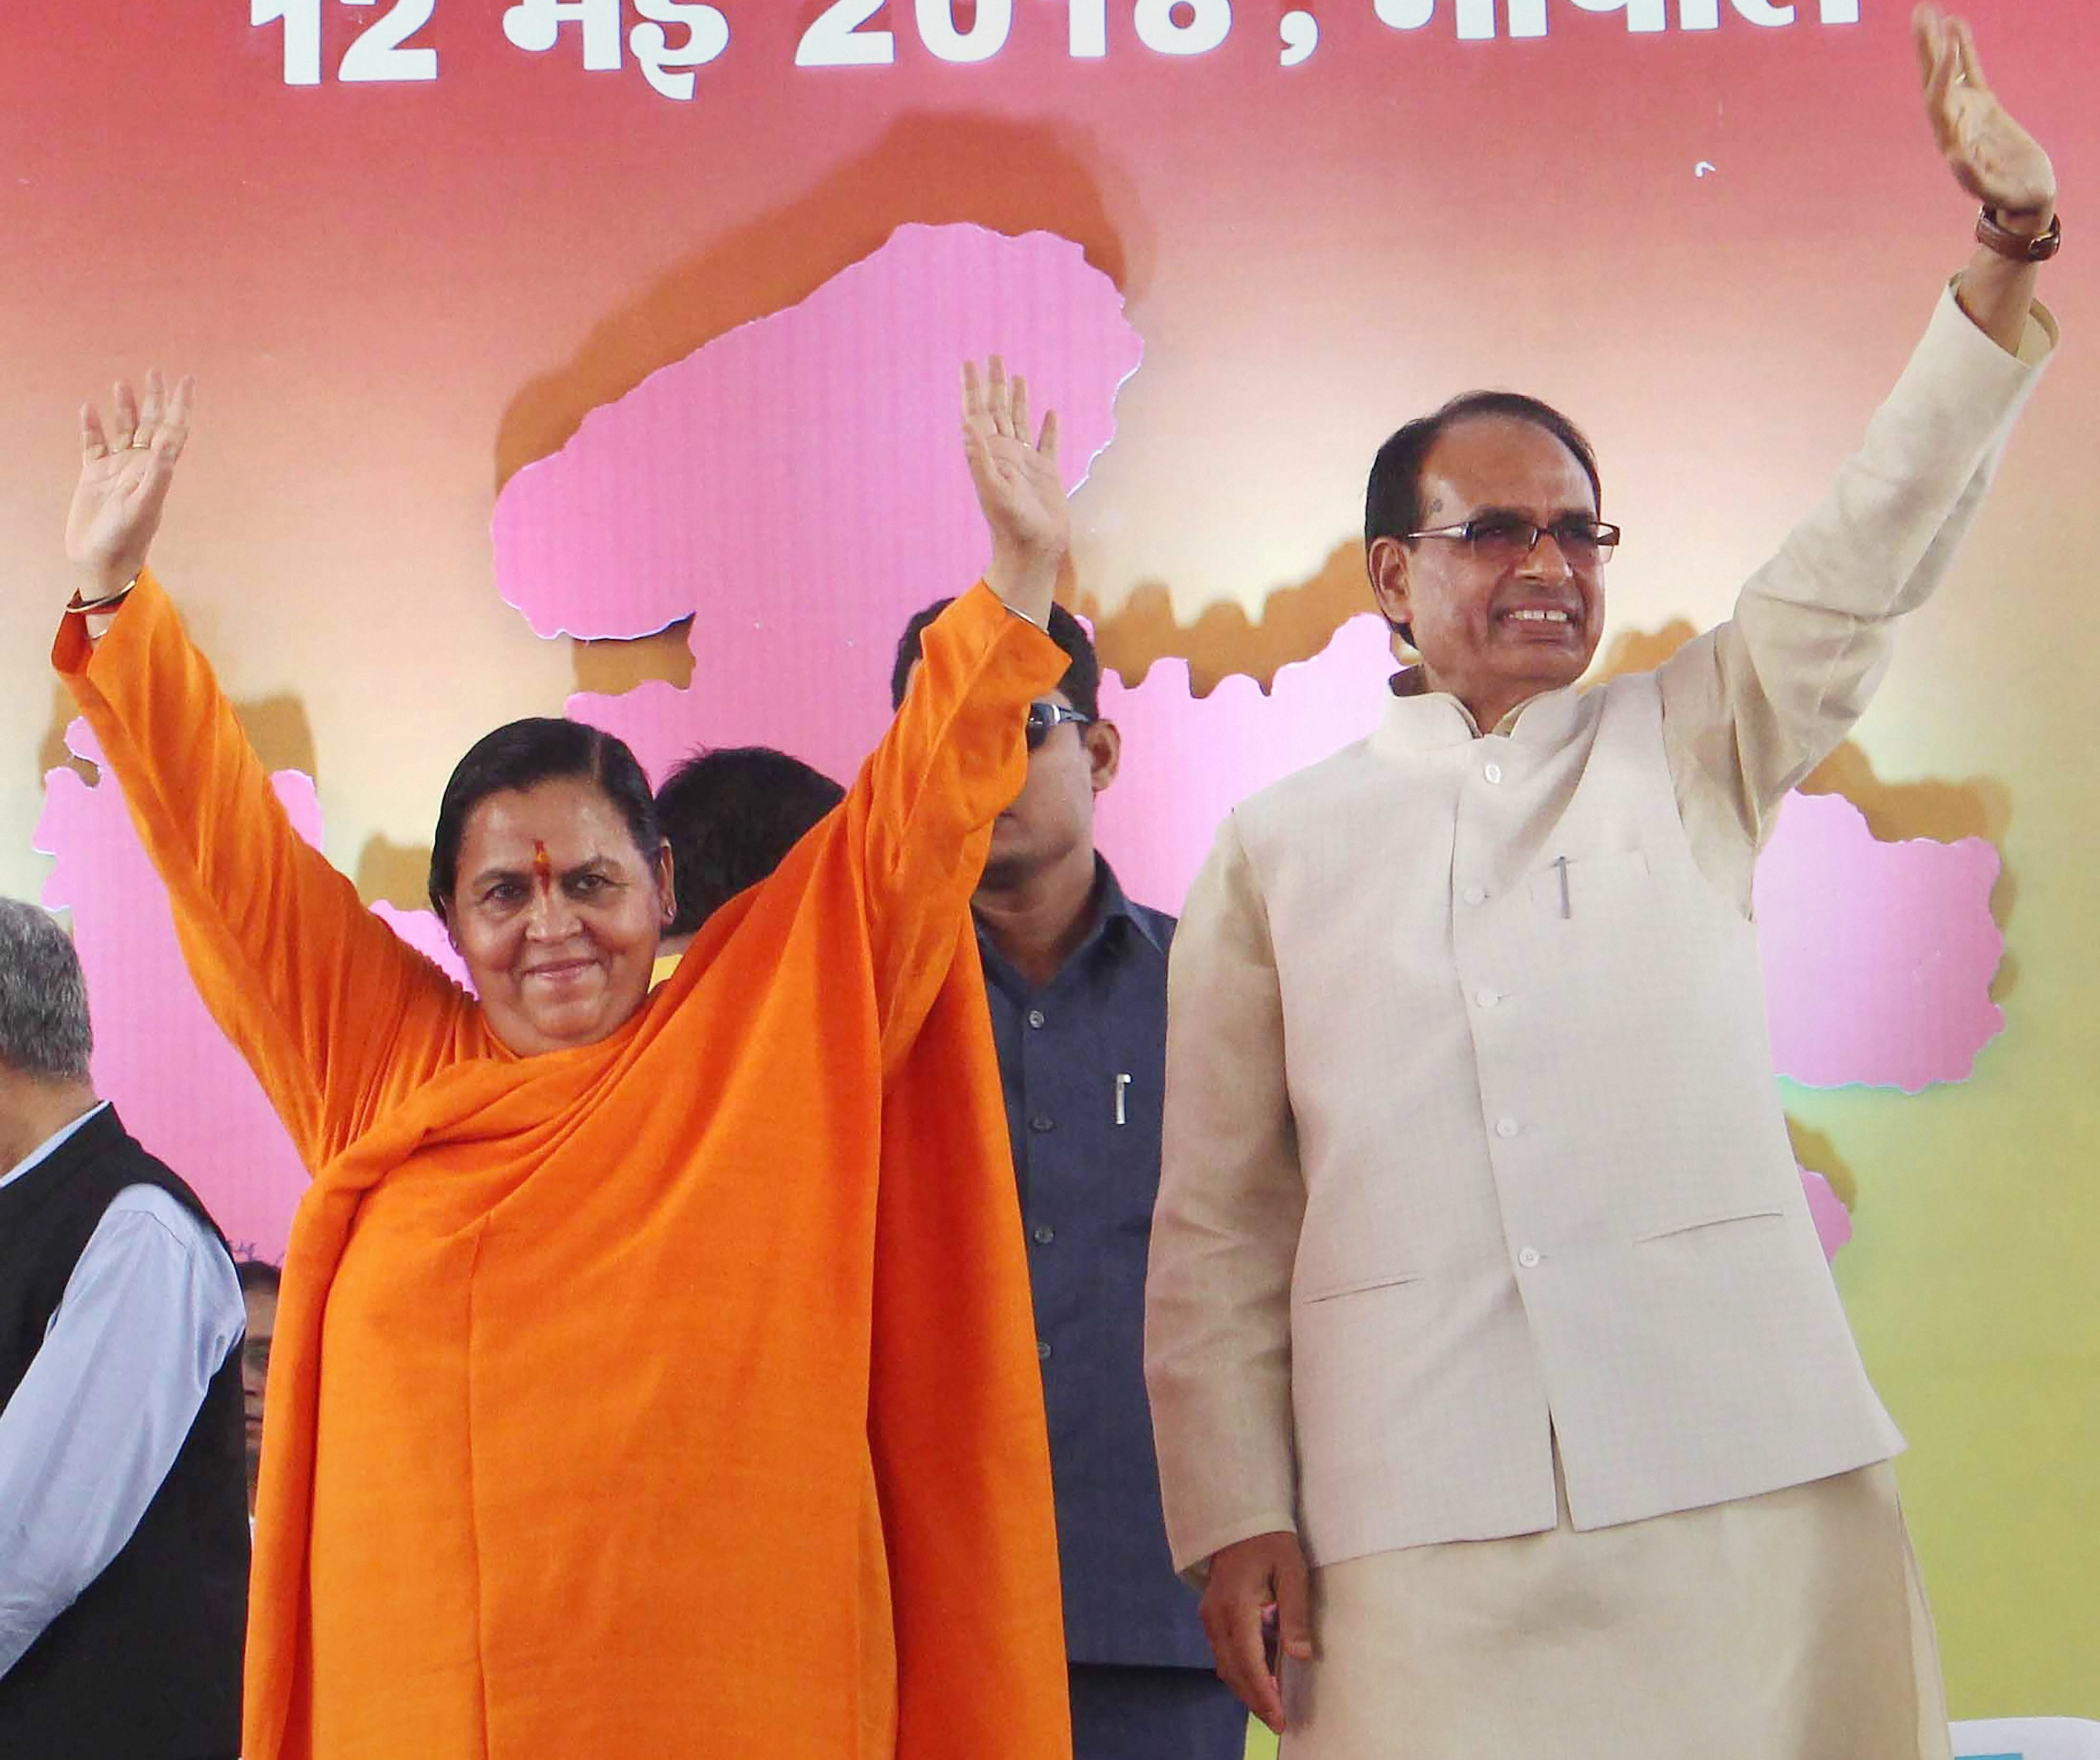 Bhopal: Union Minister for Drinking Water and Sanitation Uma Bharti and Madhya Pradesh Chief Minister Shivraj Singh Chouhan during State-level Swacchata Sammelan in Bhopal on Saturday. (PTI Photo) (PTI5_12_2018_000043B)